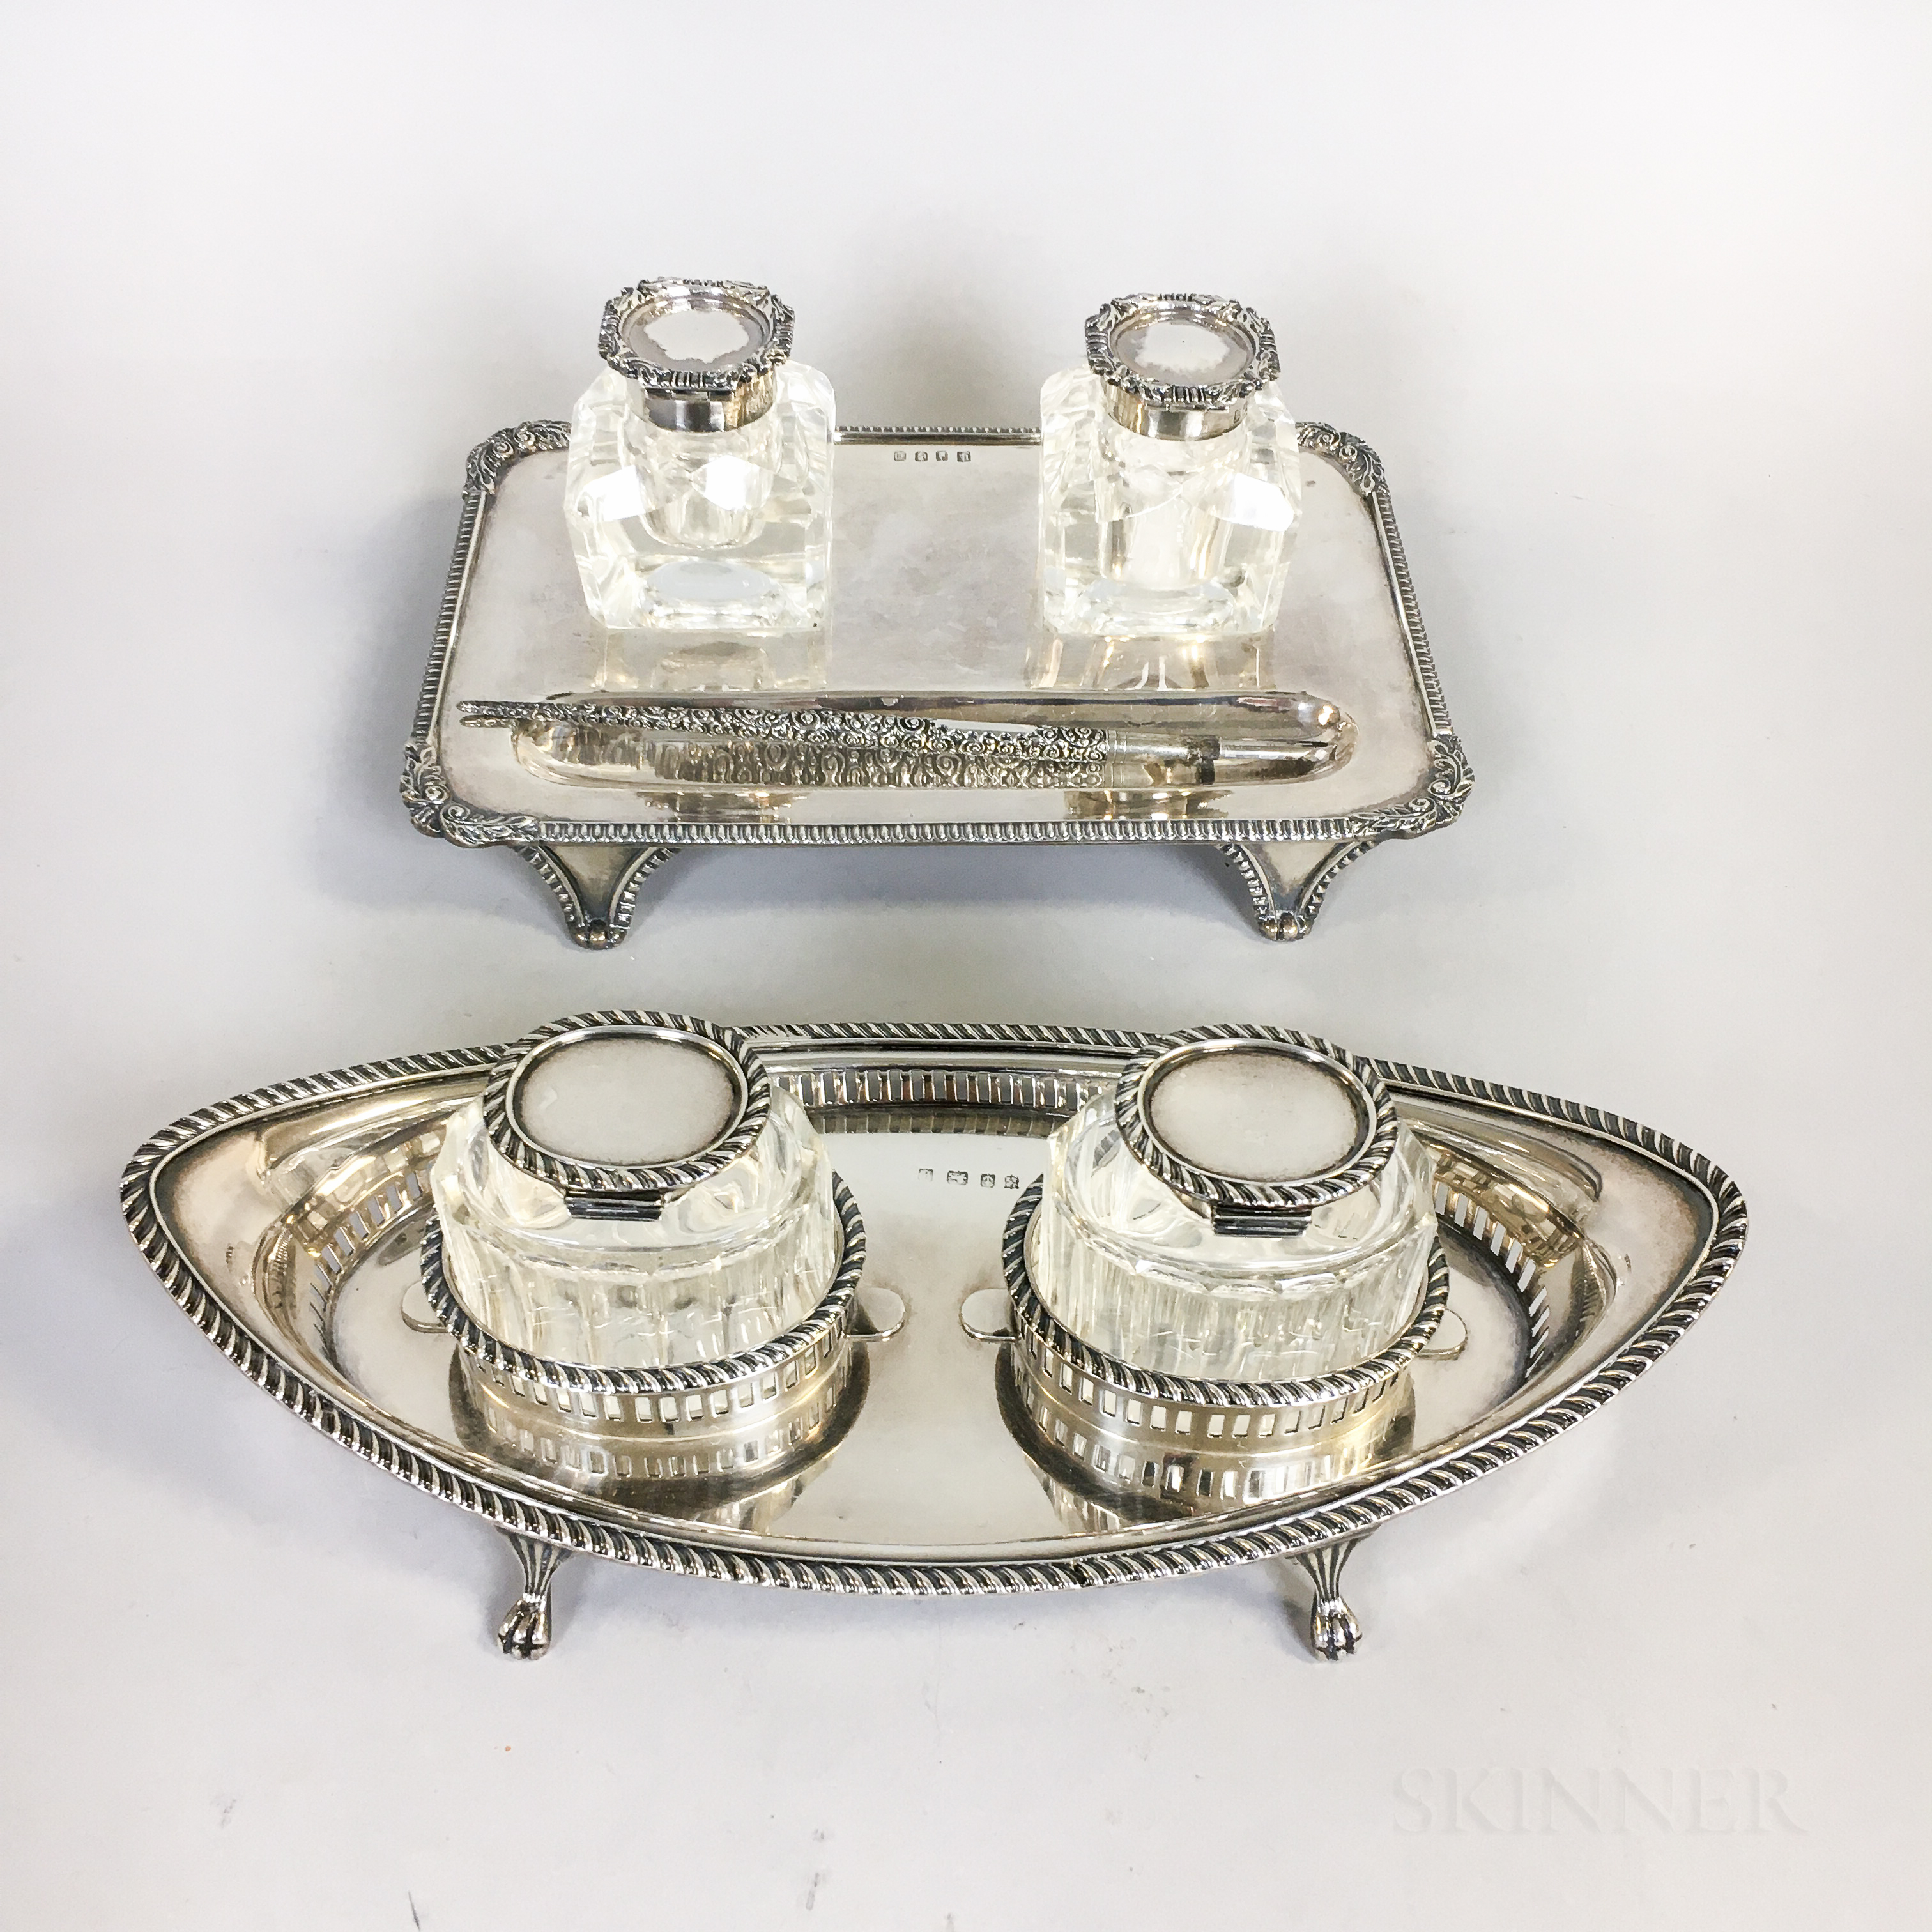 Two British Sterling Silver Ink Stands